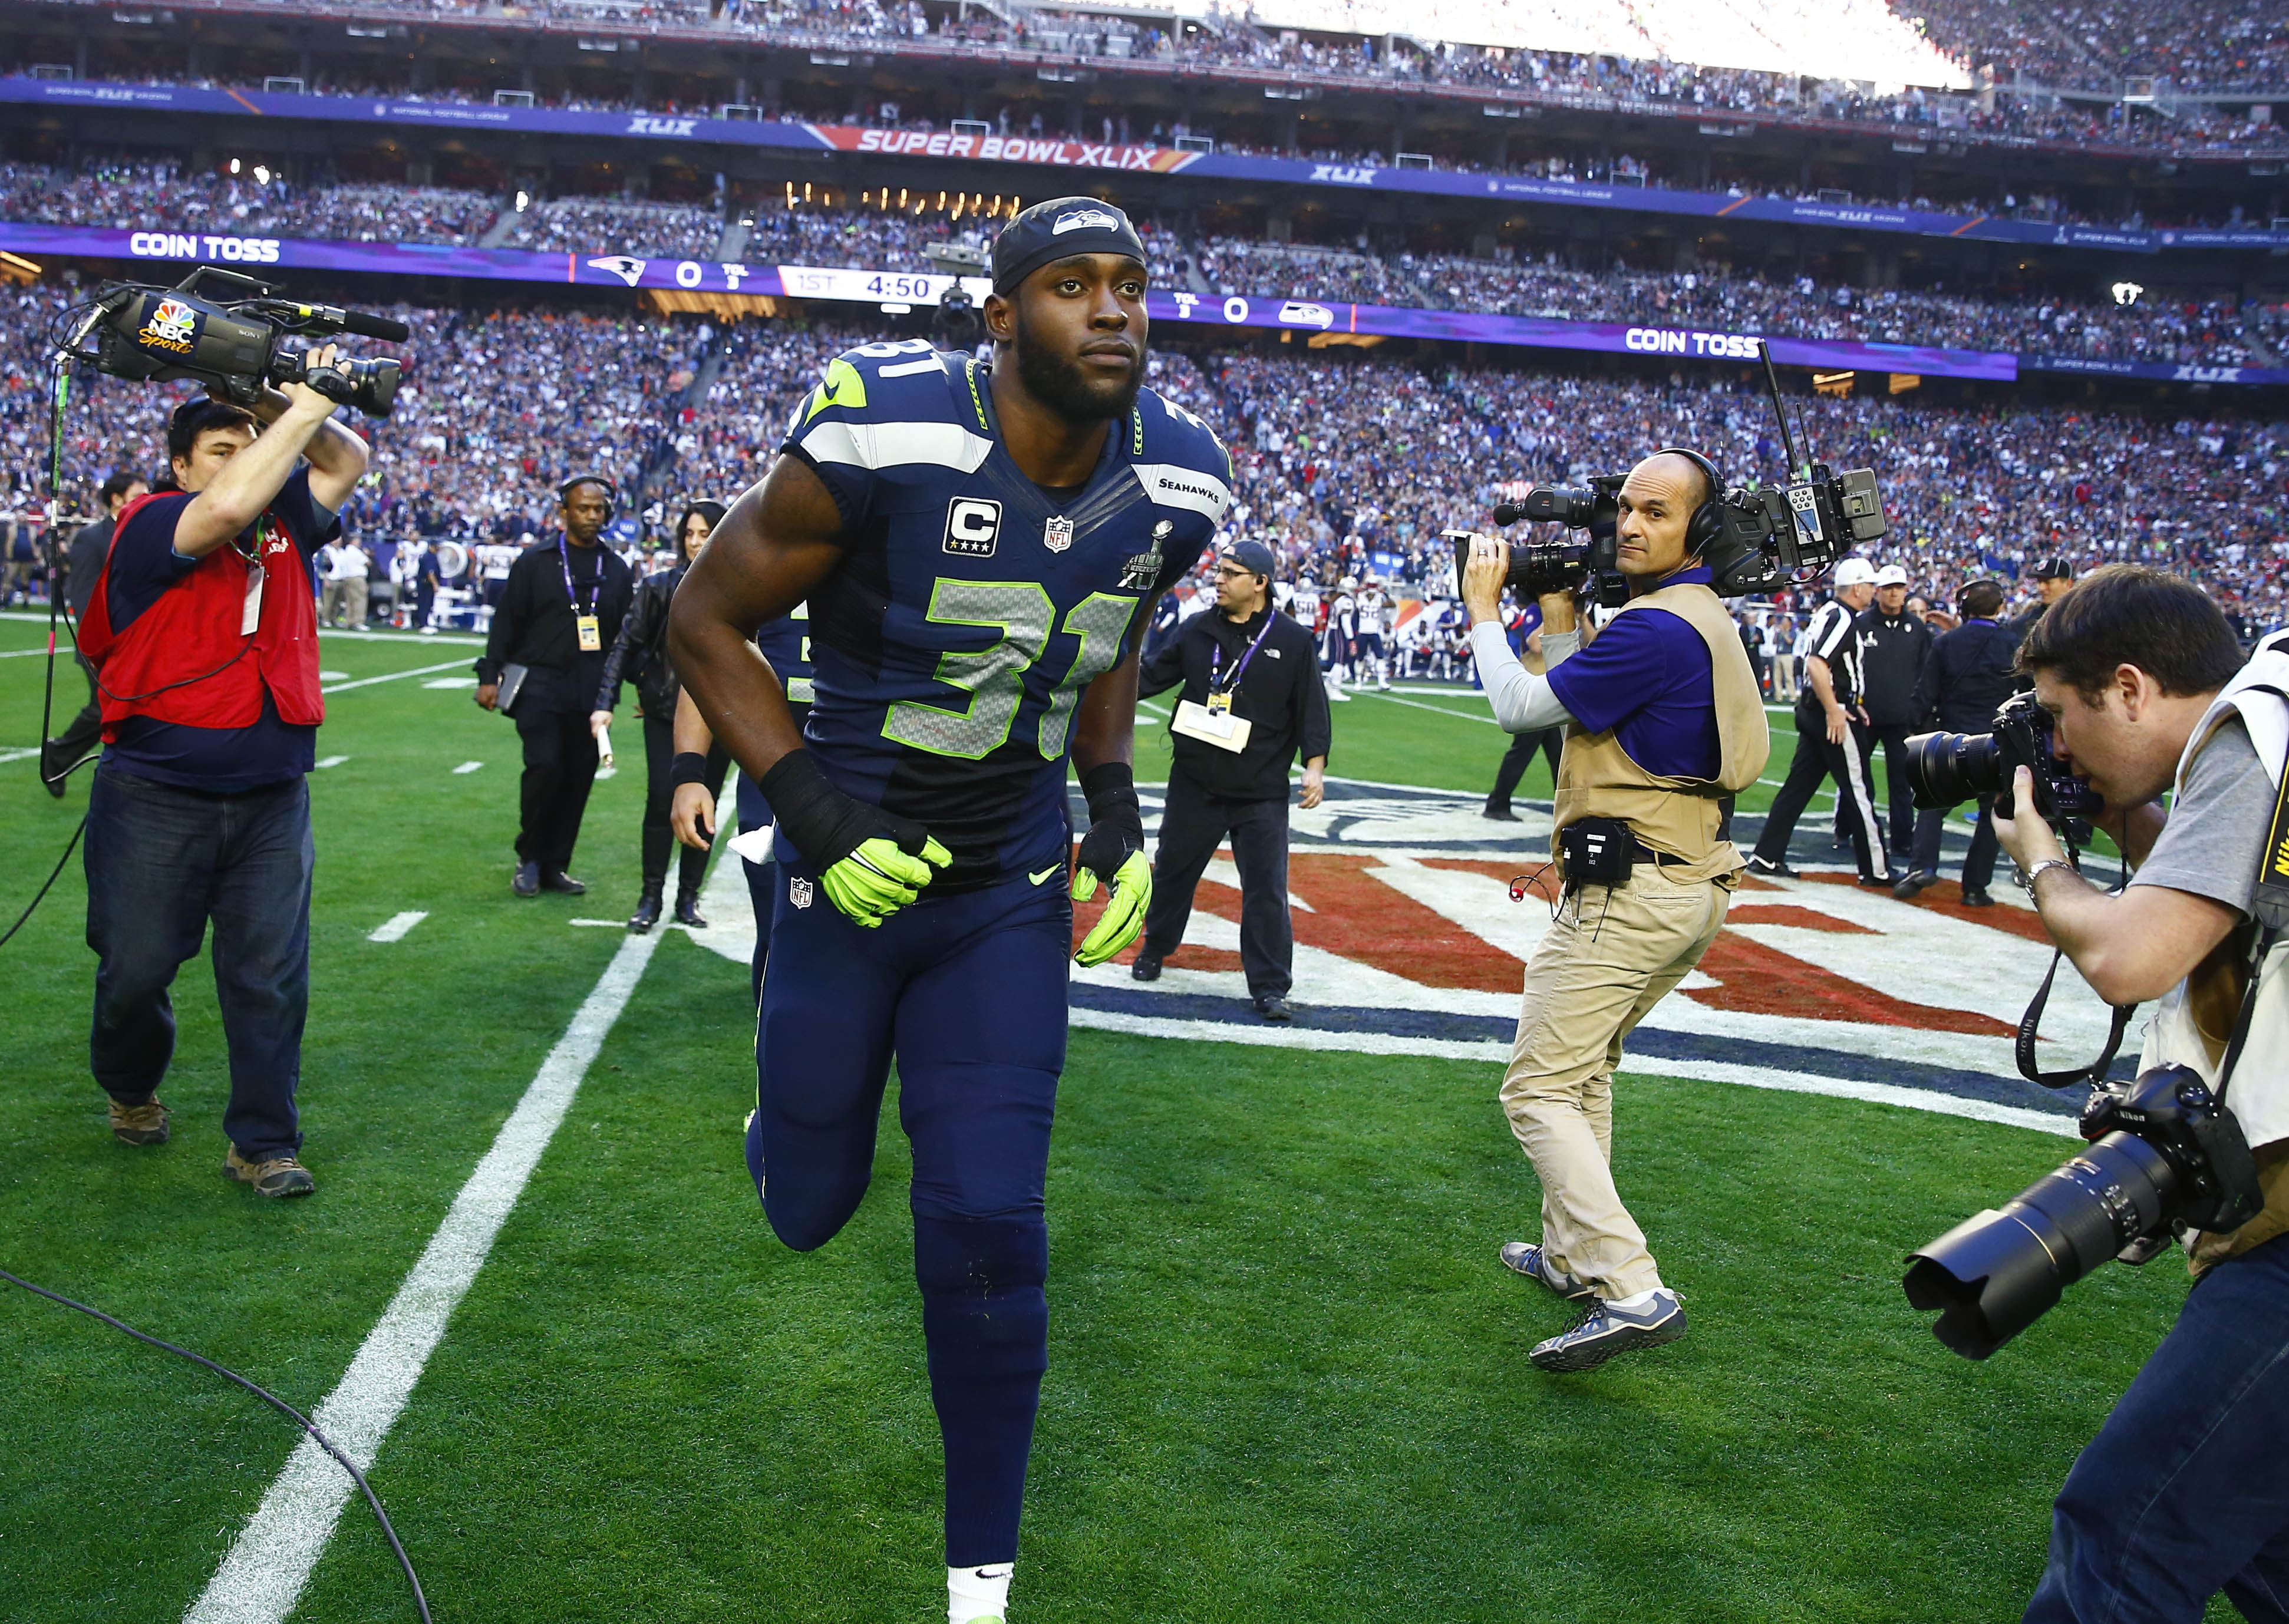 Kam Chancellor's holdout is over as he returns to Seahawks